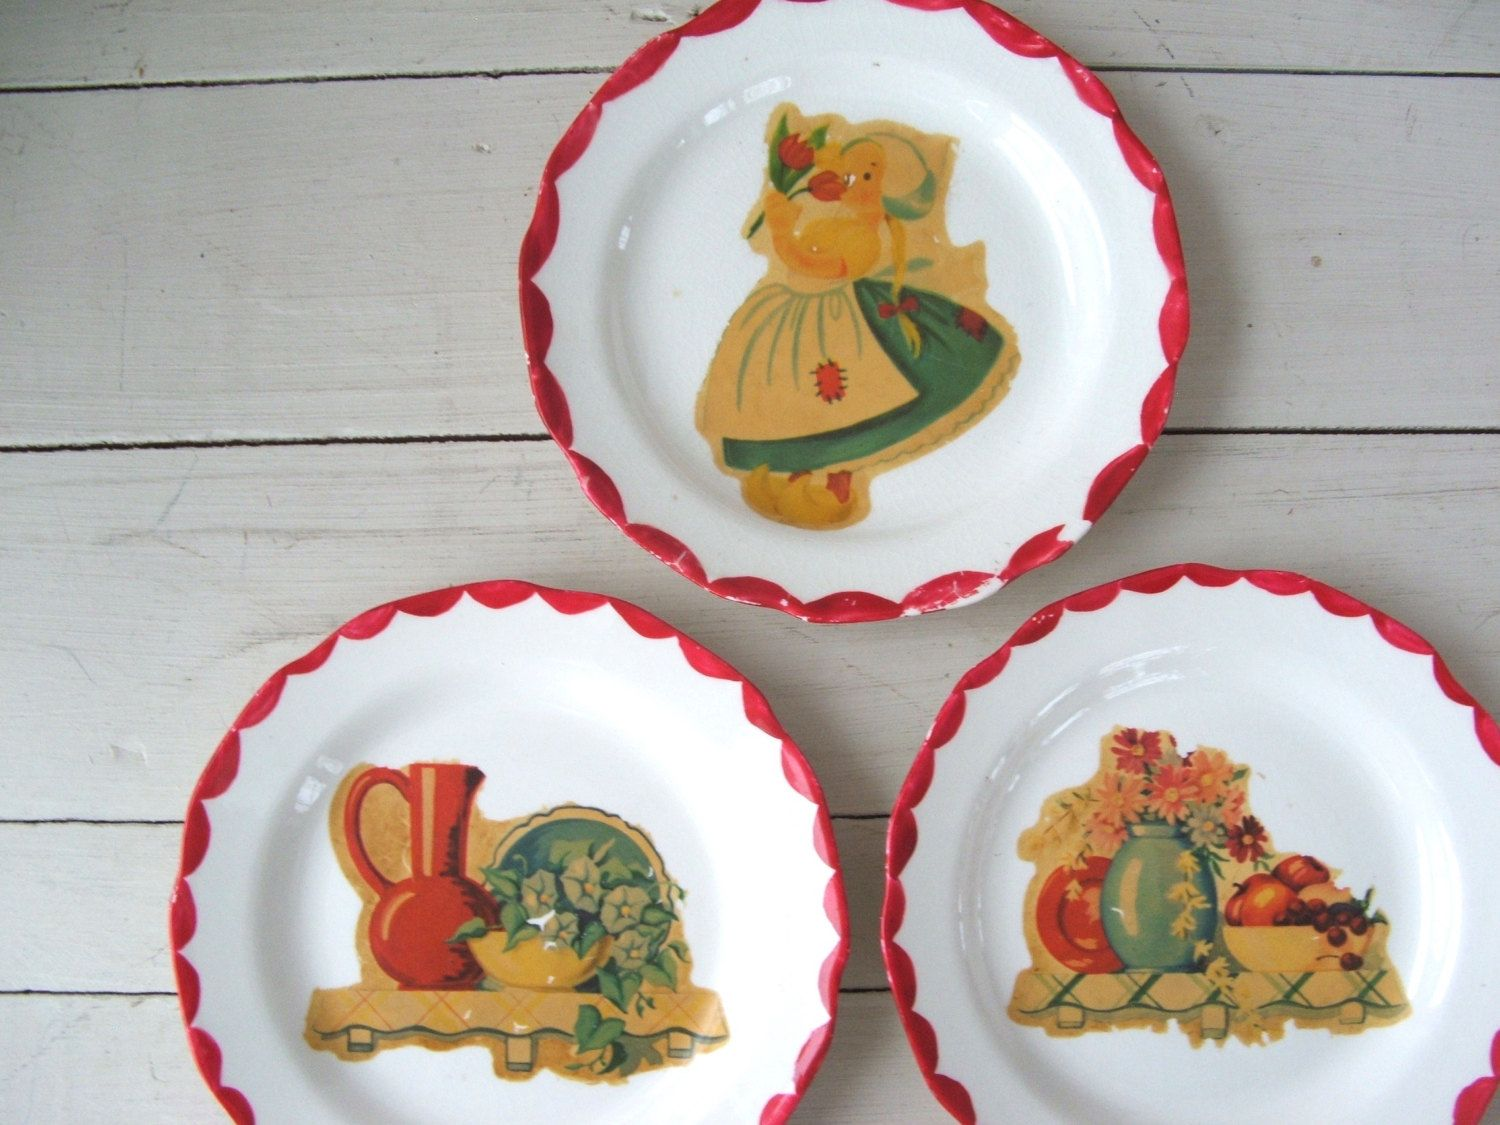 3 shabby small saucer plates handpainted vintage kitchen decals dutch girl flowers by lookonmytreasures on Etsy